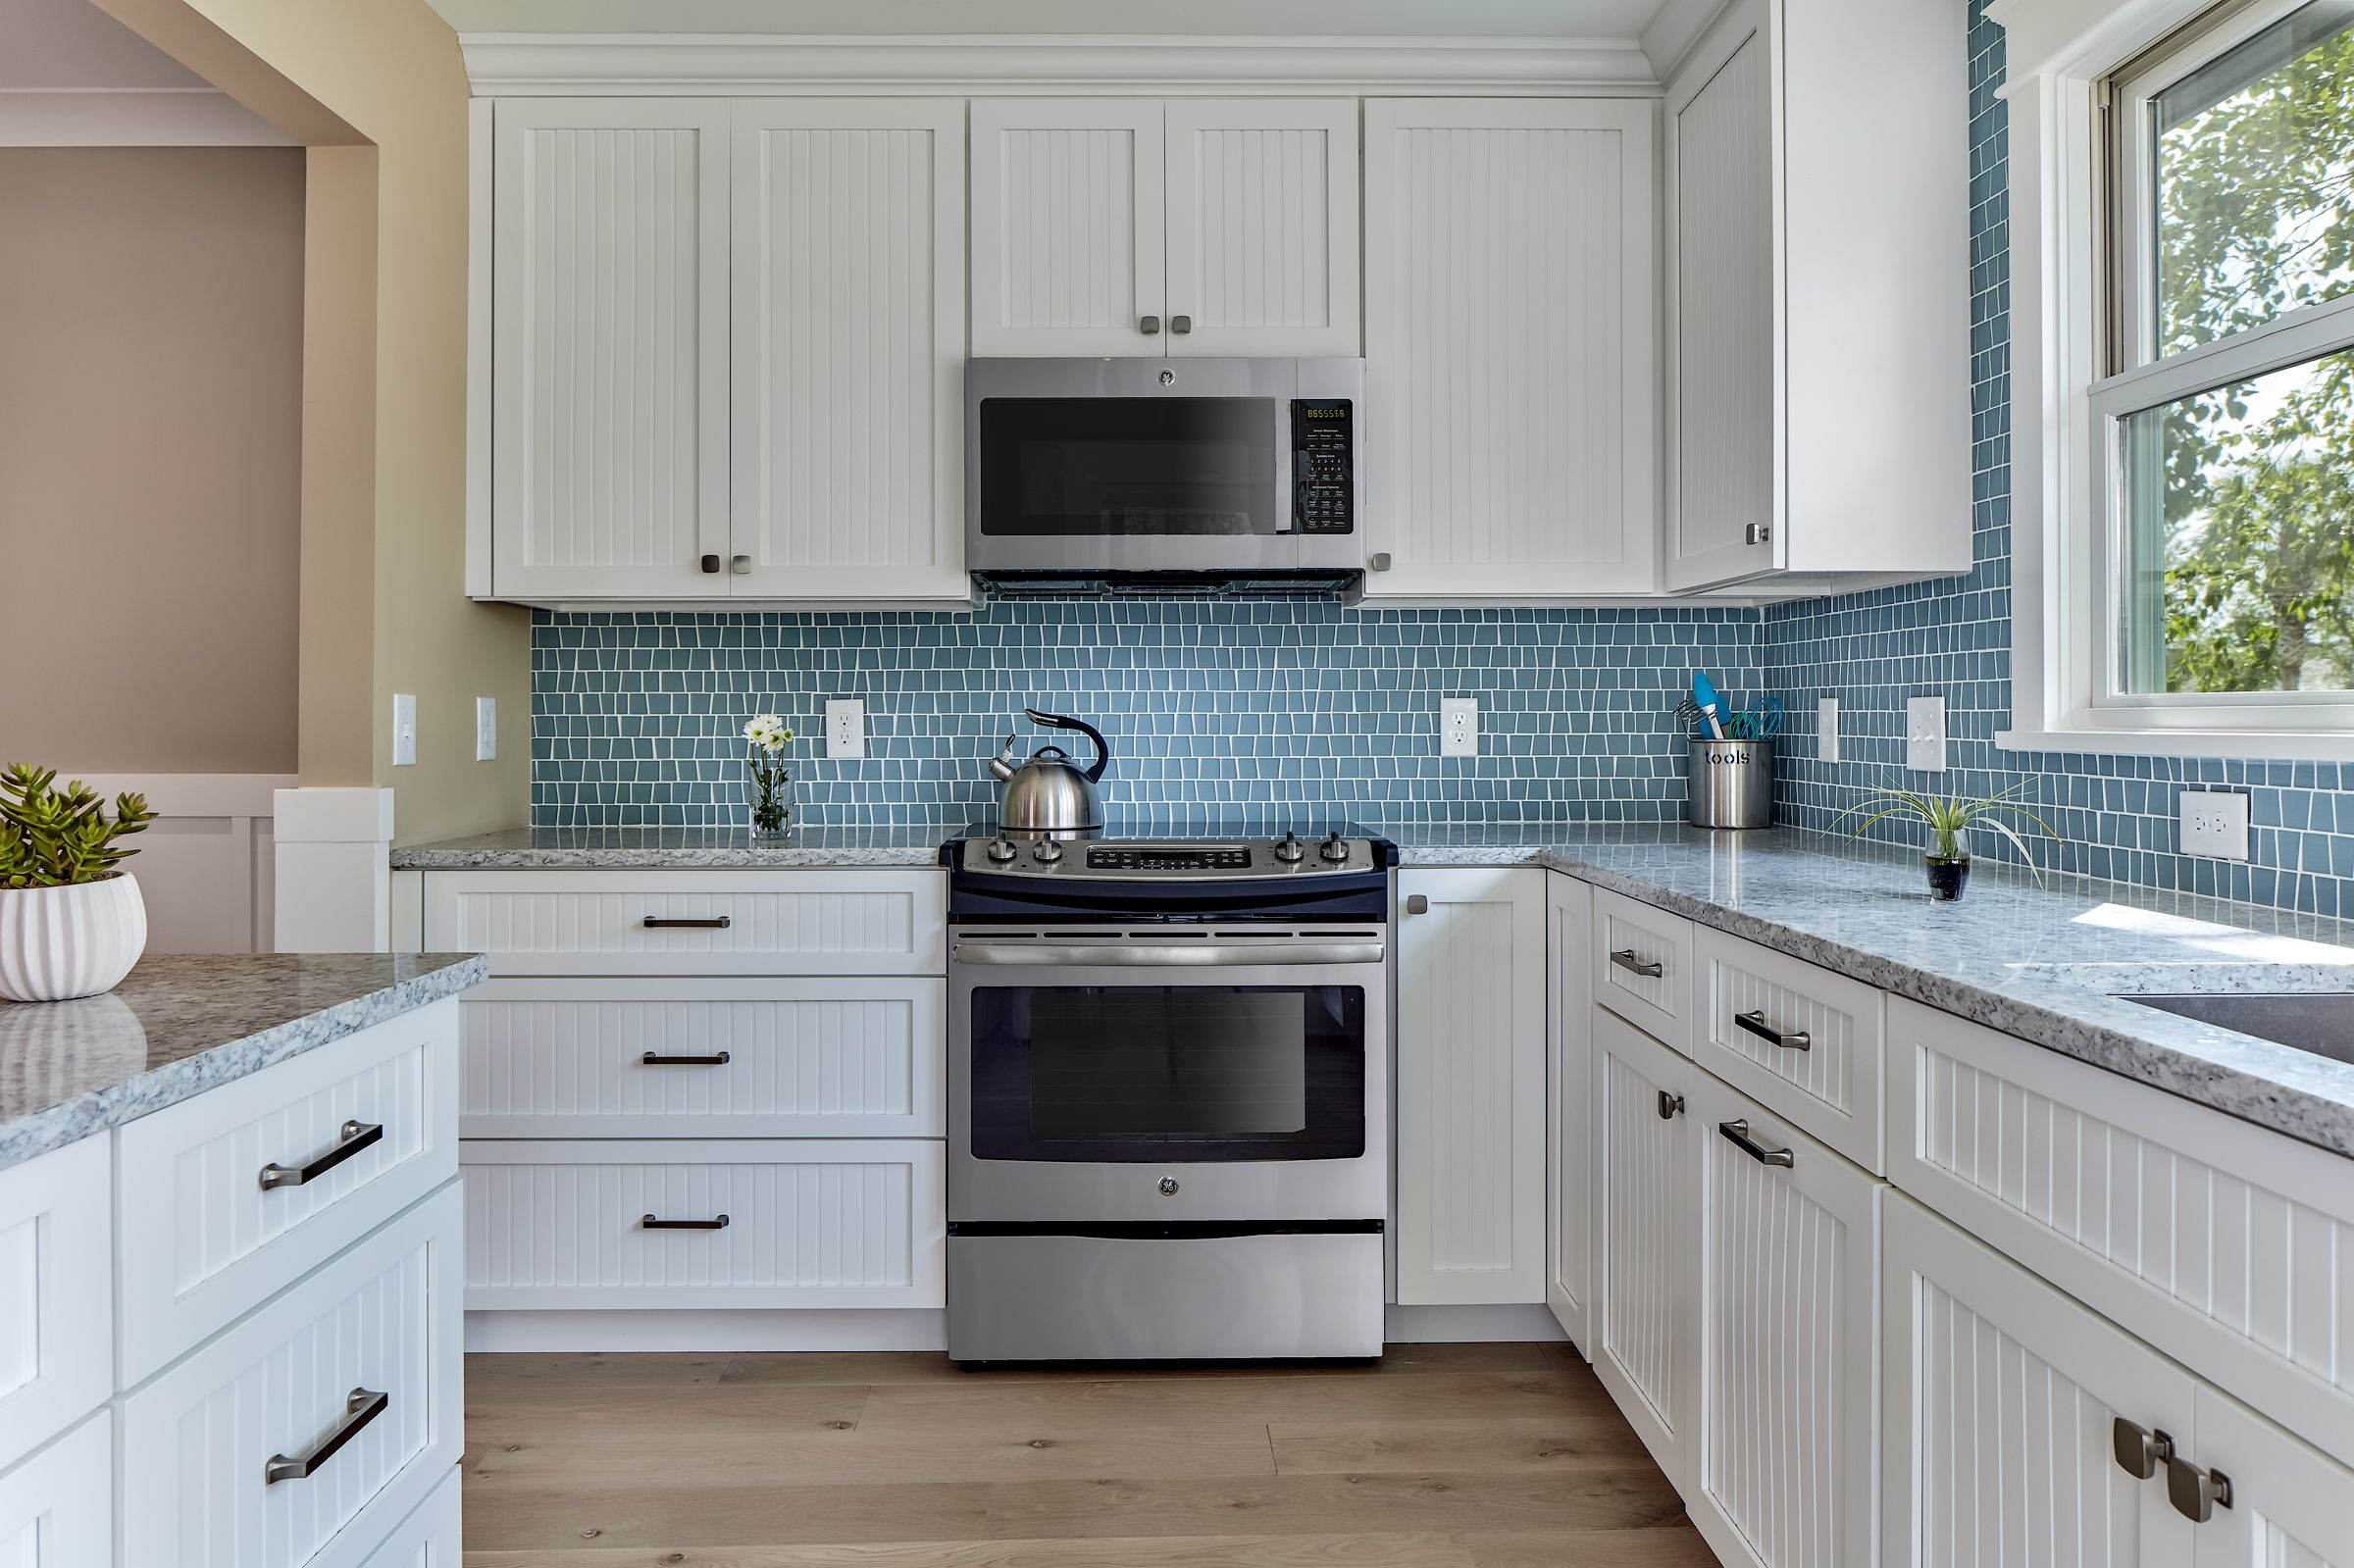 Newly Renovated Kitchen Has All New Stainless Steel Appliances And A Fresh Look With White Cabinets Beauti Kitchen Cabinets Grey Kitchen Grey Kitchen Cabinets